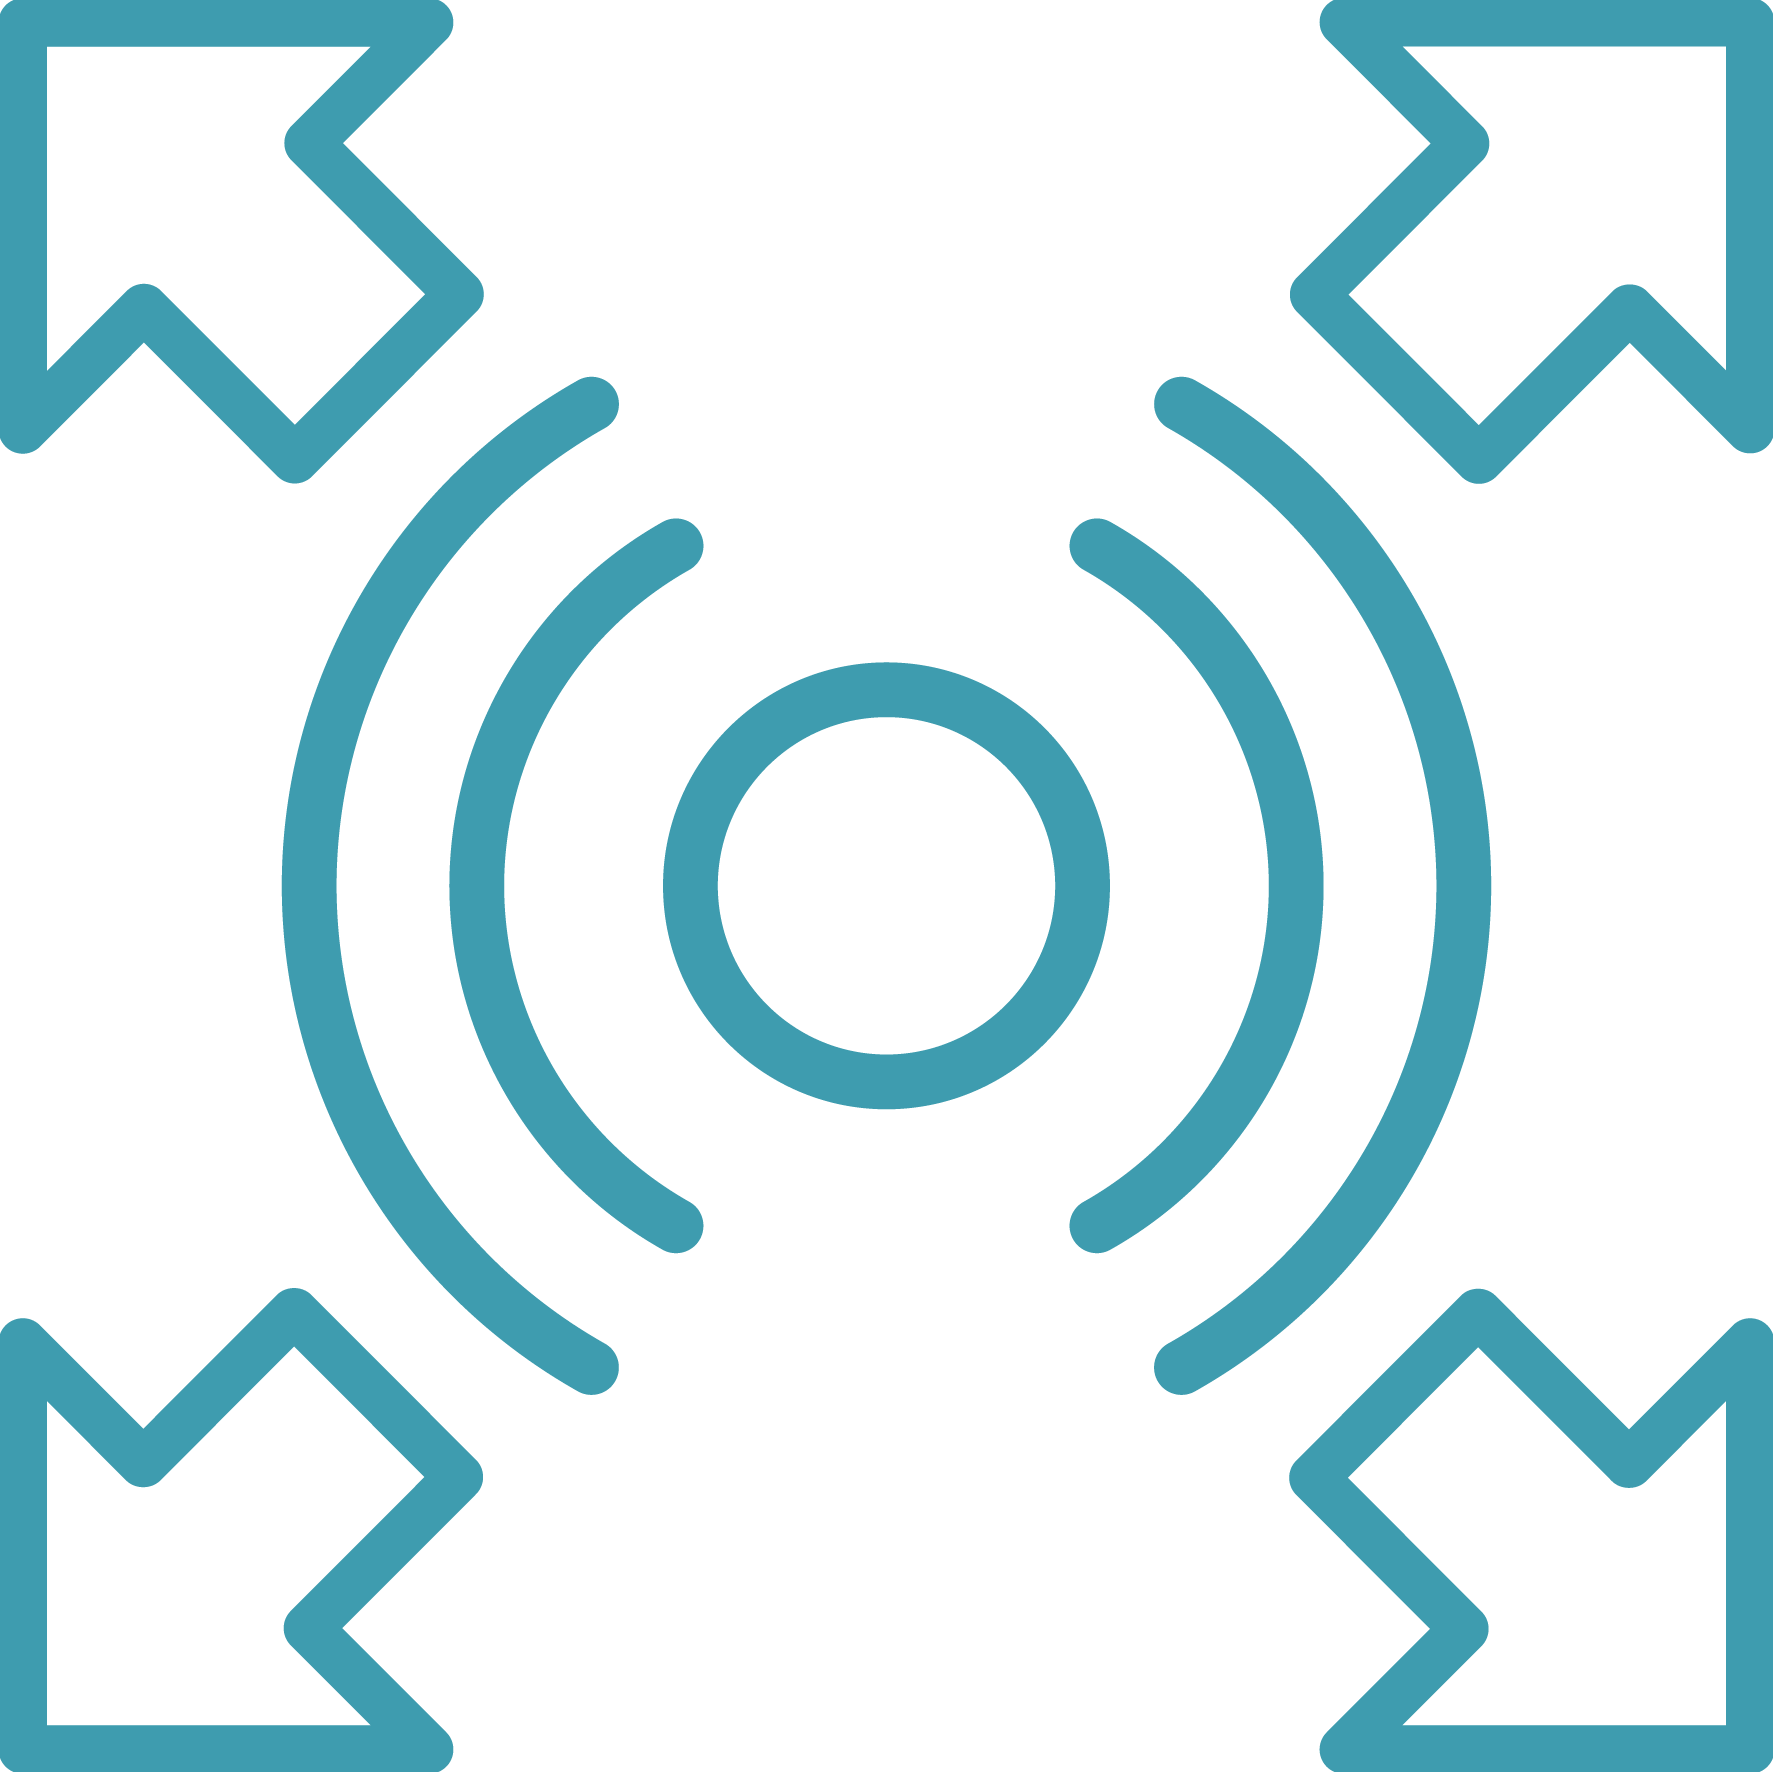 Blueprint_icons-04.png